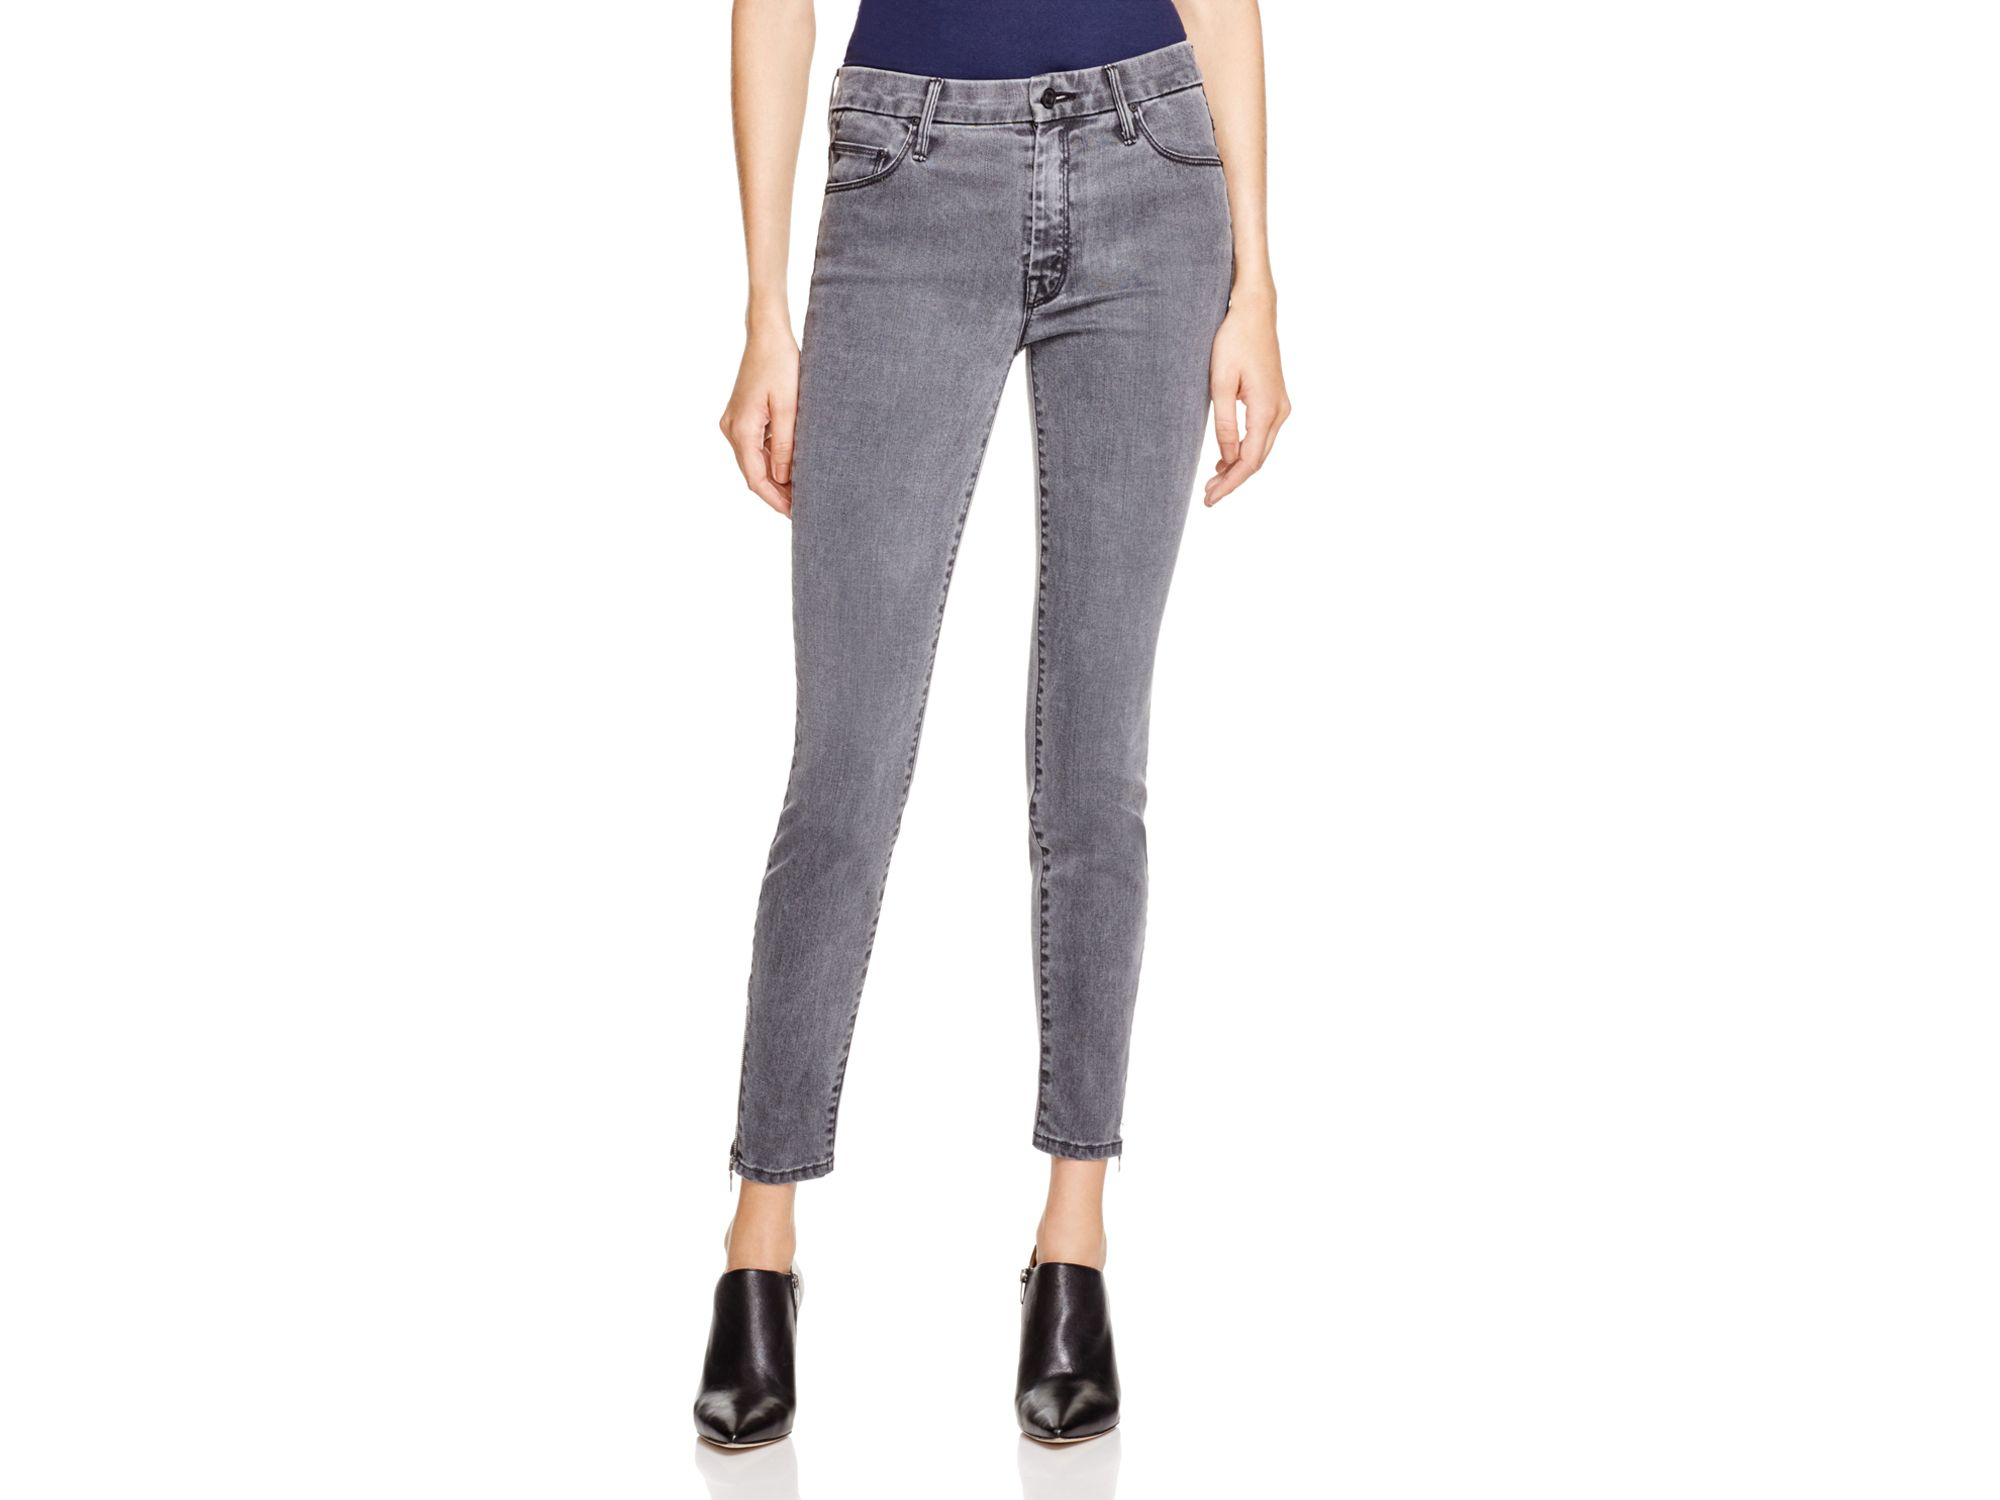 9219e612a8e5a Lyst - Mother High-waisted Looker Ankle Zip Jeans In Shadows   Light ...